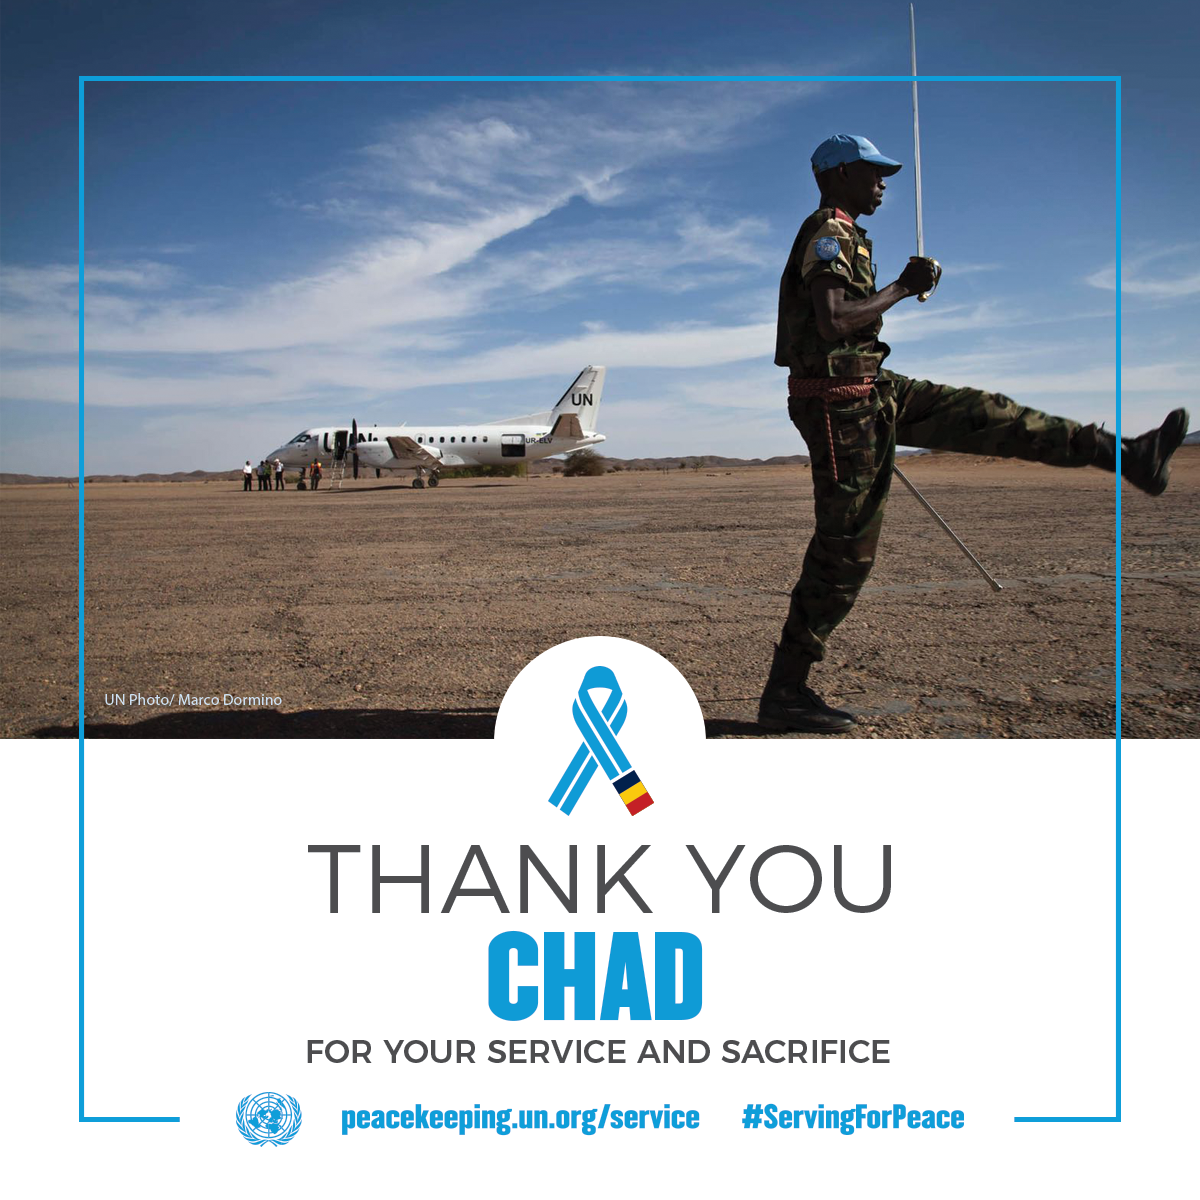 Chadian peacekeepers serving in the UN Mission in Mali | UN Photo